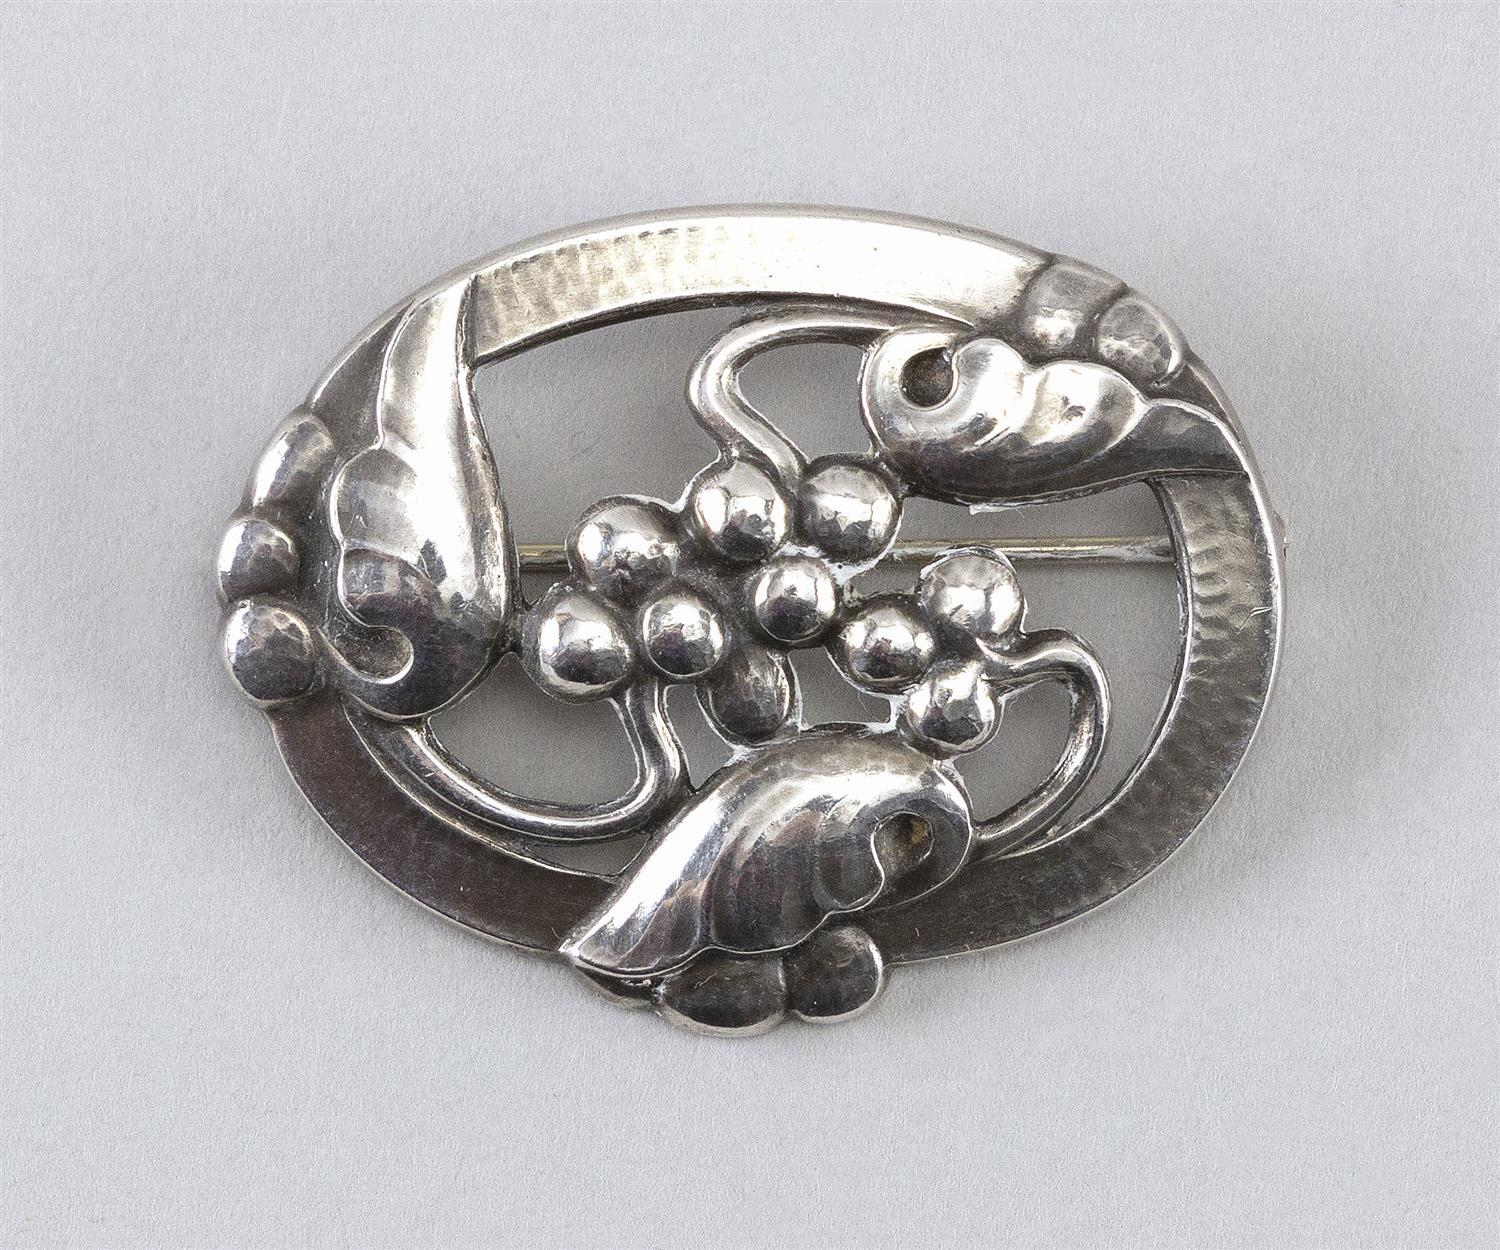 GEORG JENSEN STERLING SILVER BROOCH Numbered 101. Intertwined leaves and berries within an oval frame. Hammered surface. Includes fe...